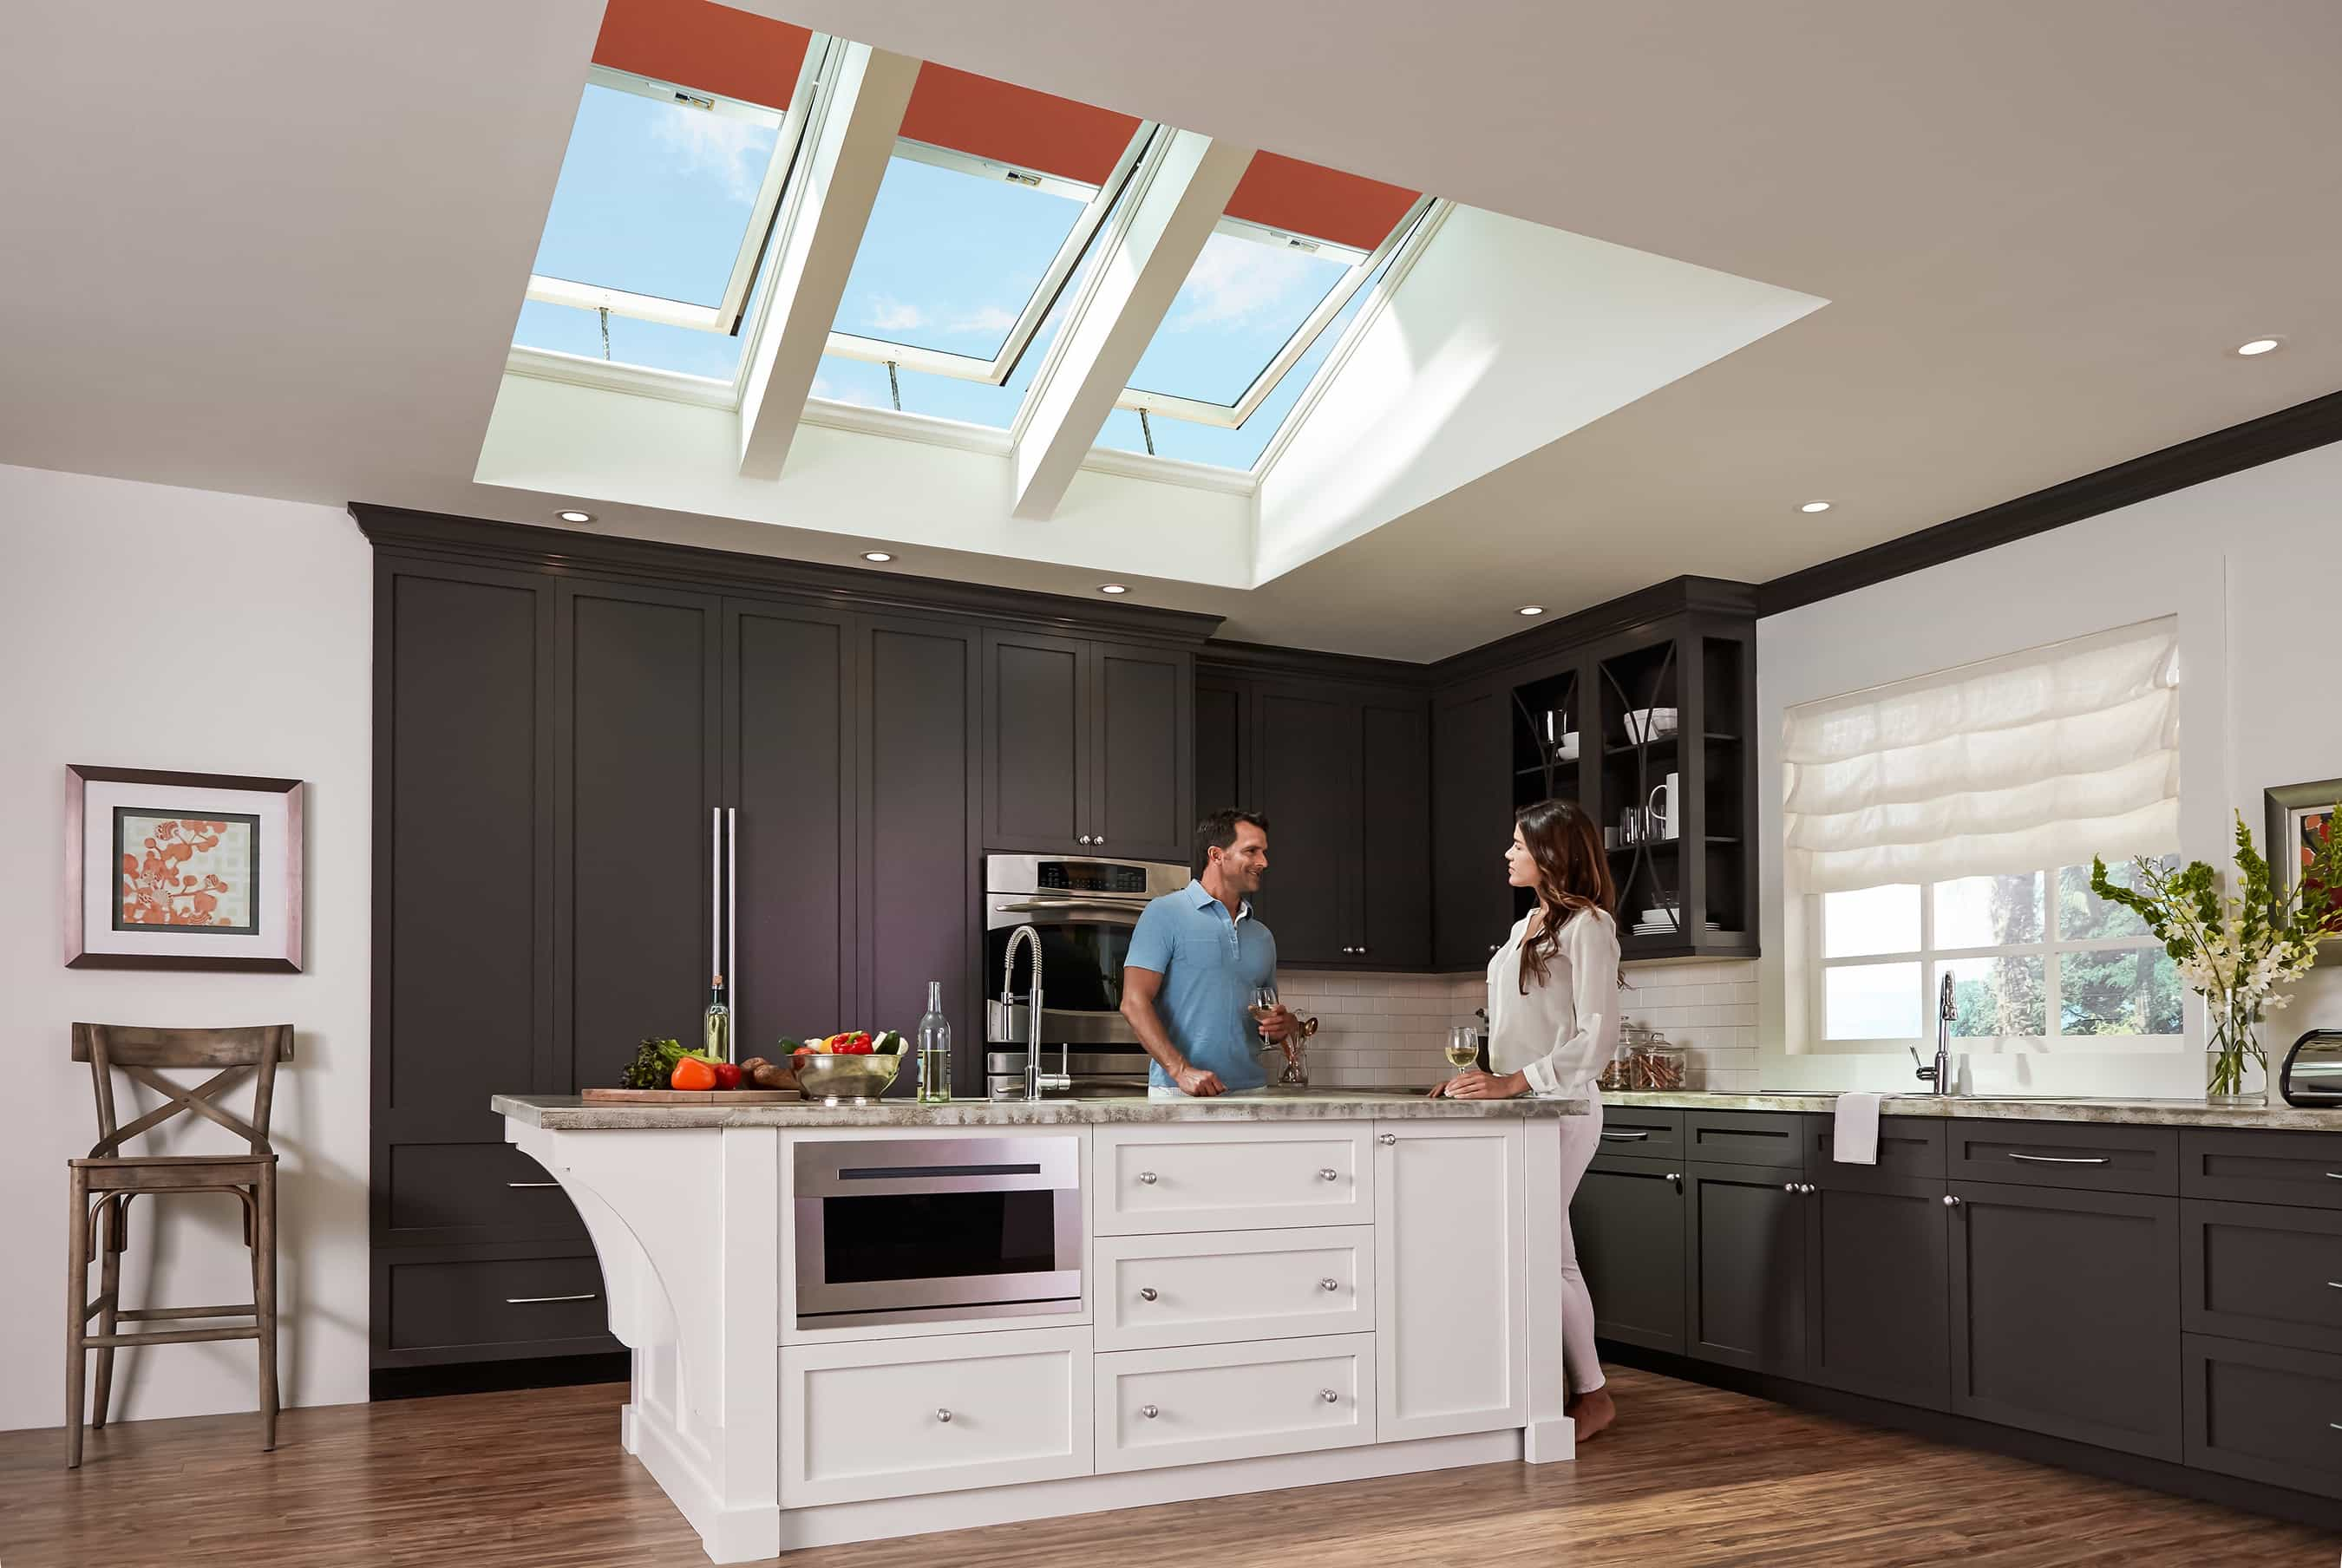 Traditional Kitchen With Modern Skylight Blackout Shade (View 8 of 25)